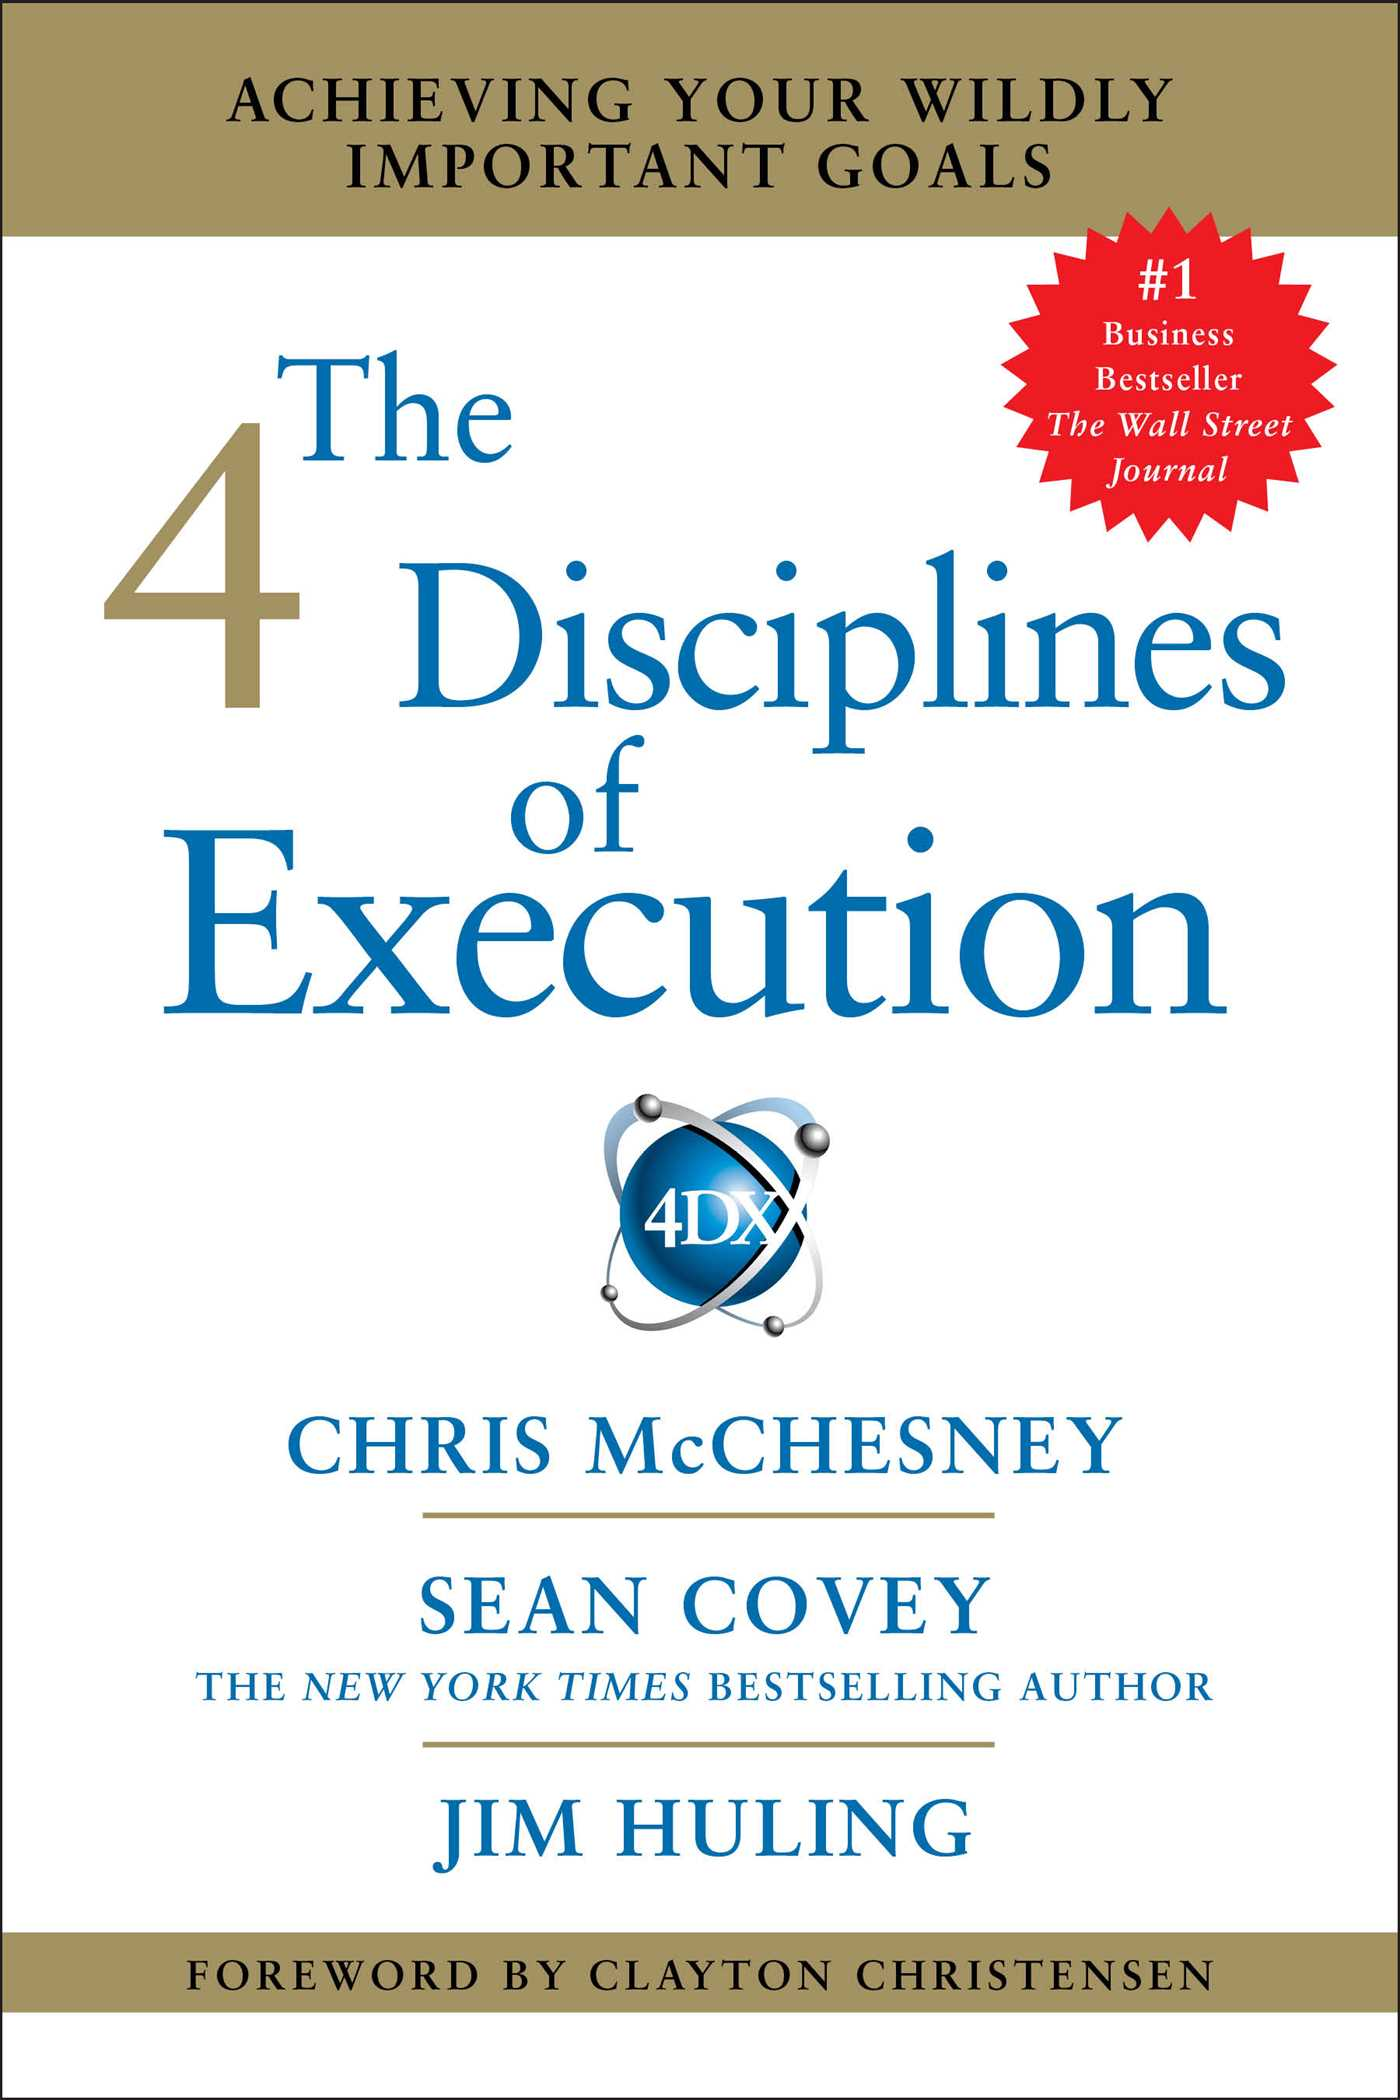 Book Cover Image (jpg): The 4 Disciplines of Execution